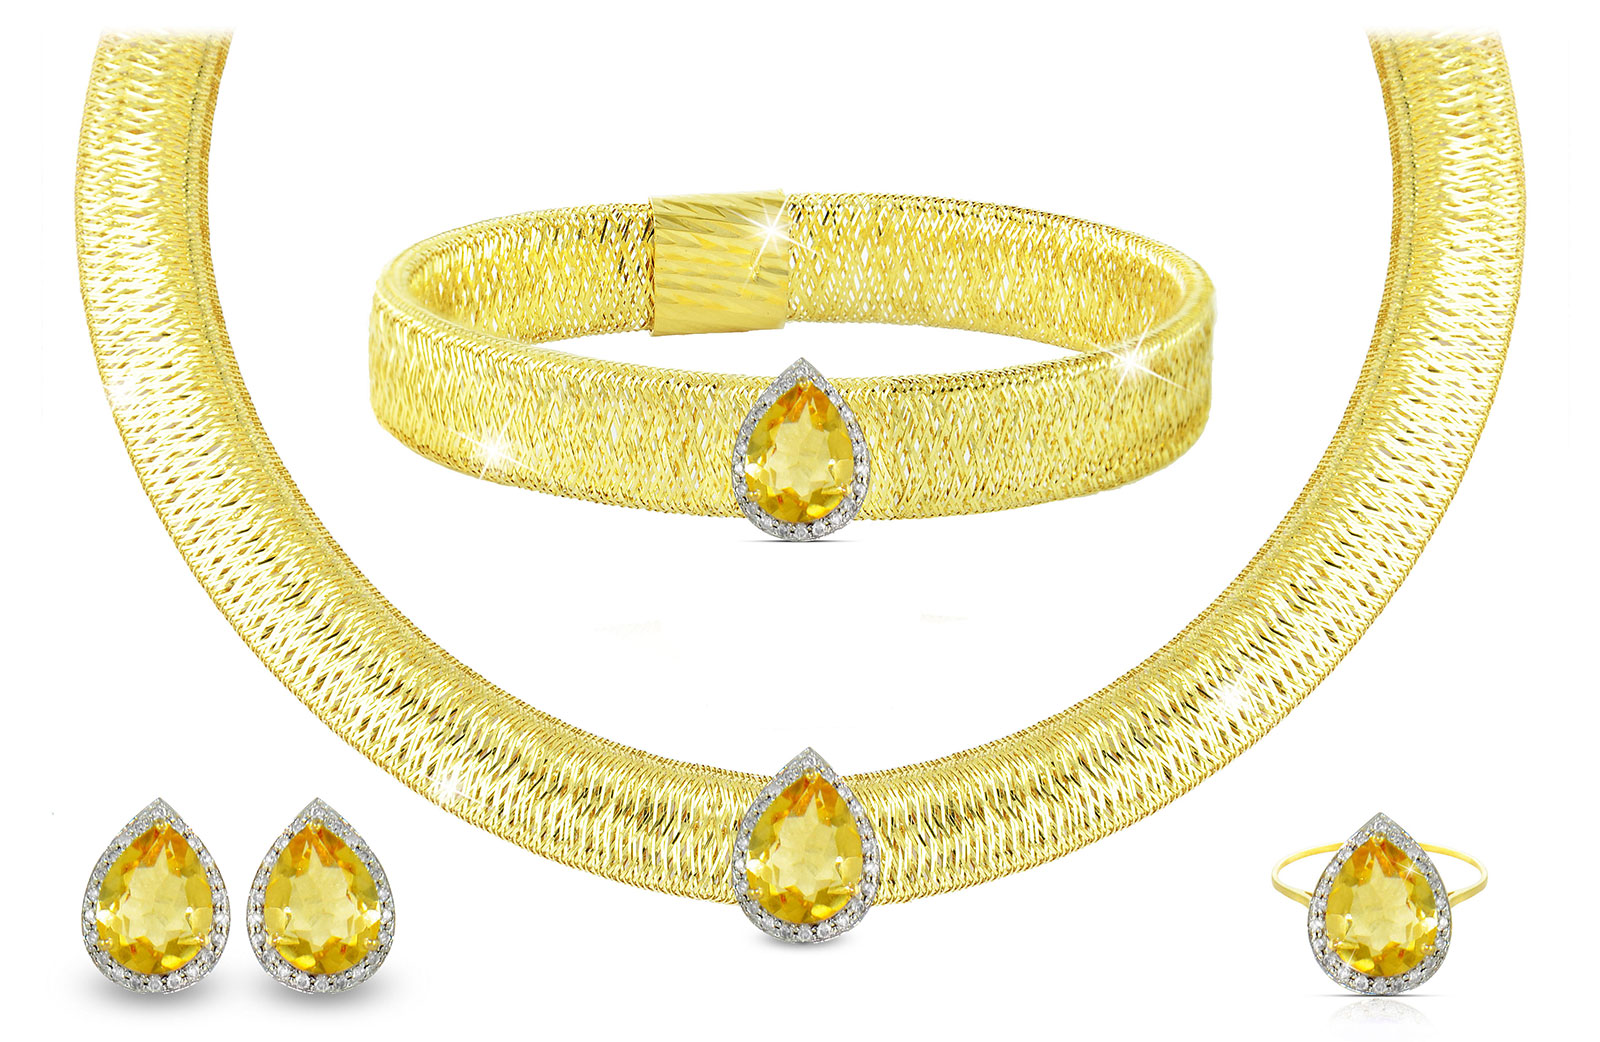 Vera Perla 18K Gold 0.60ct Diamonds, Citrine  Jewelry Set - 4 pcs.